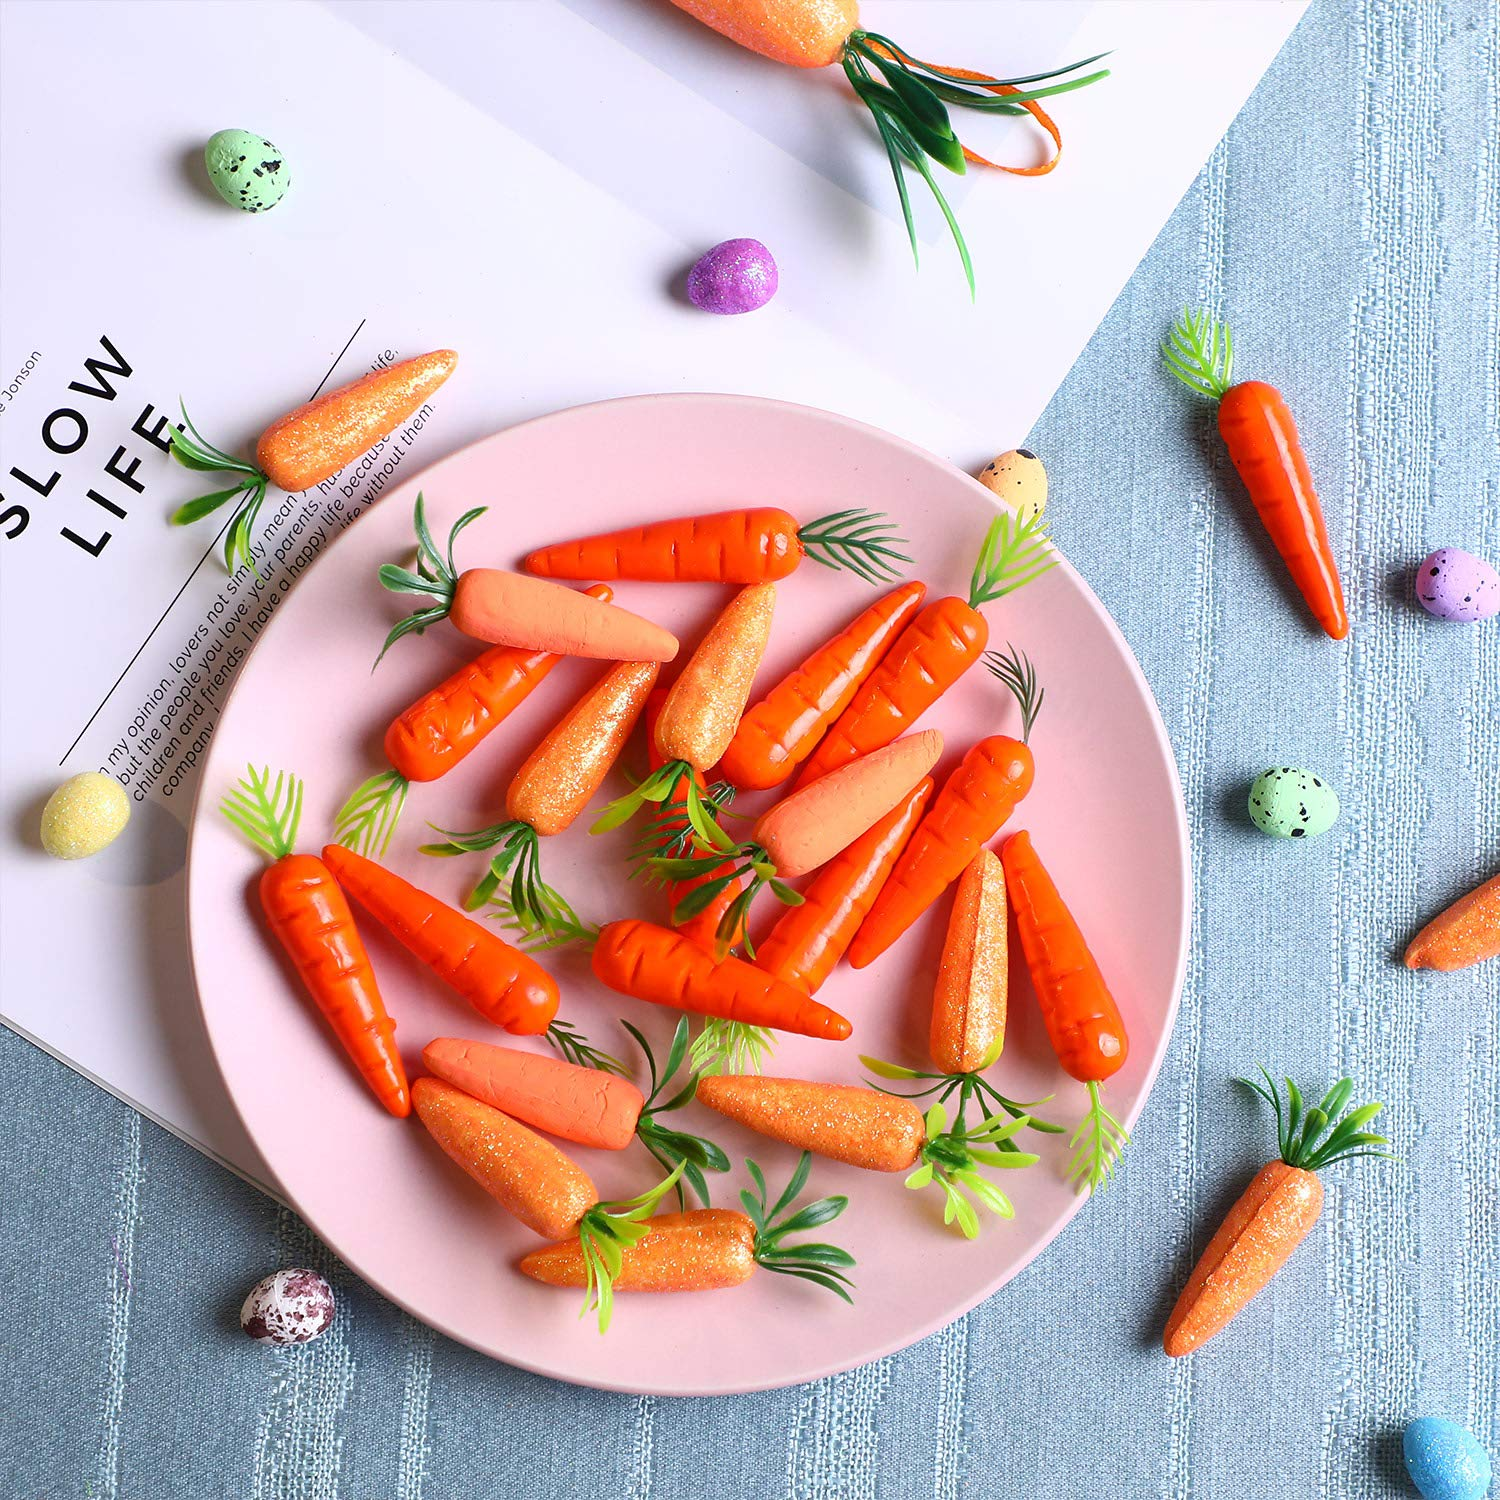 Zonon Easter Carrots Mini Plastic Artificial Carrot Ornaments for DIY Crafts Home Kitchen Party Decorations 100 Packs